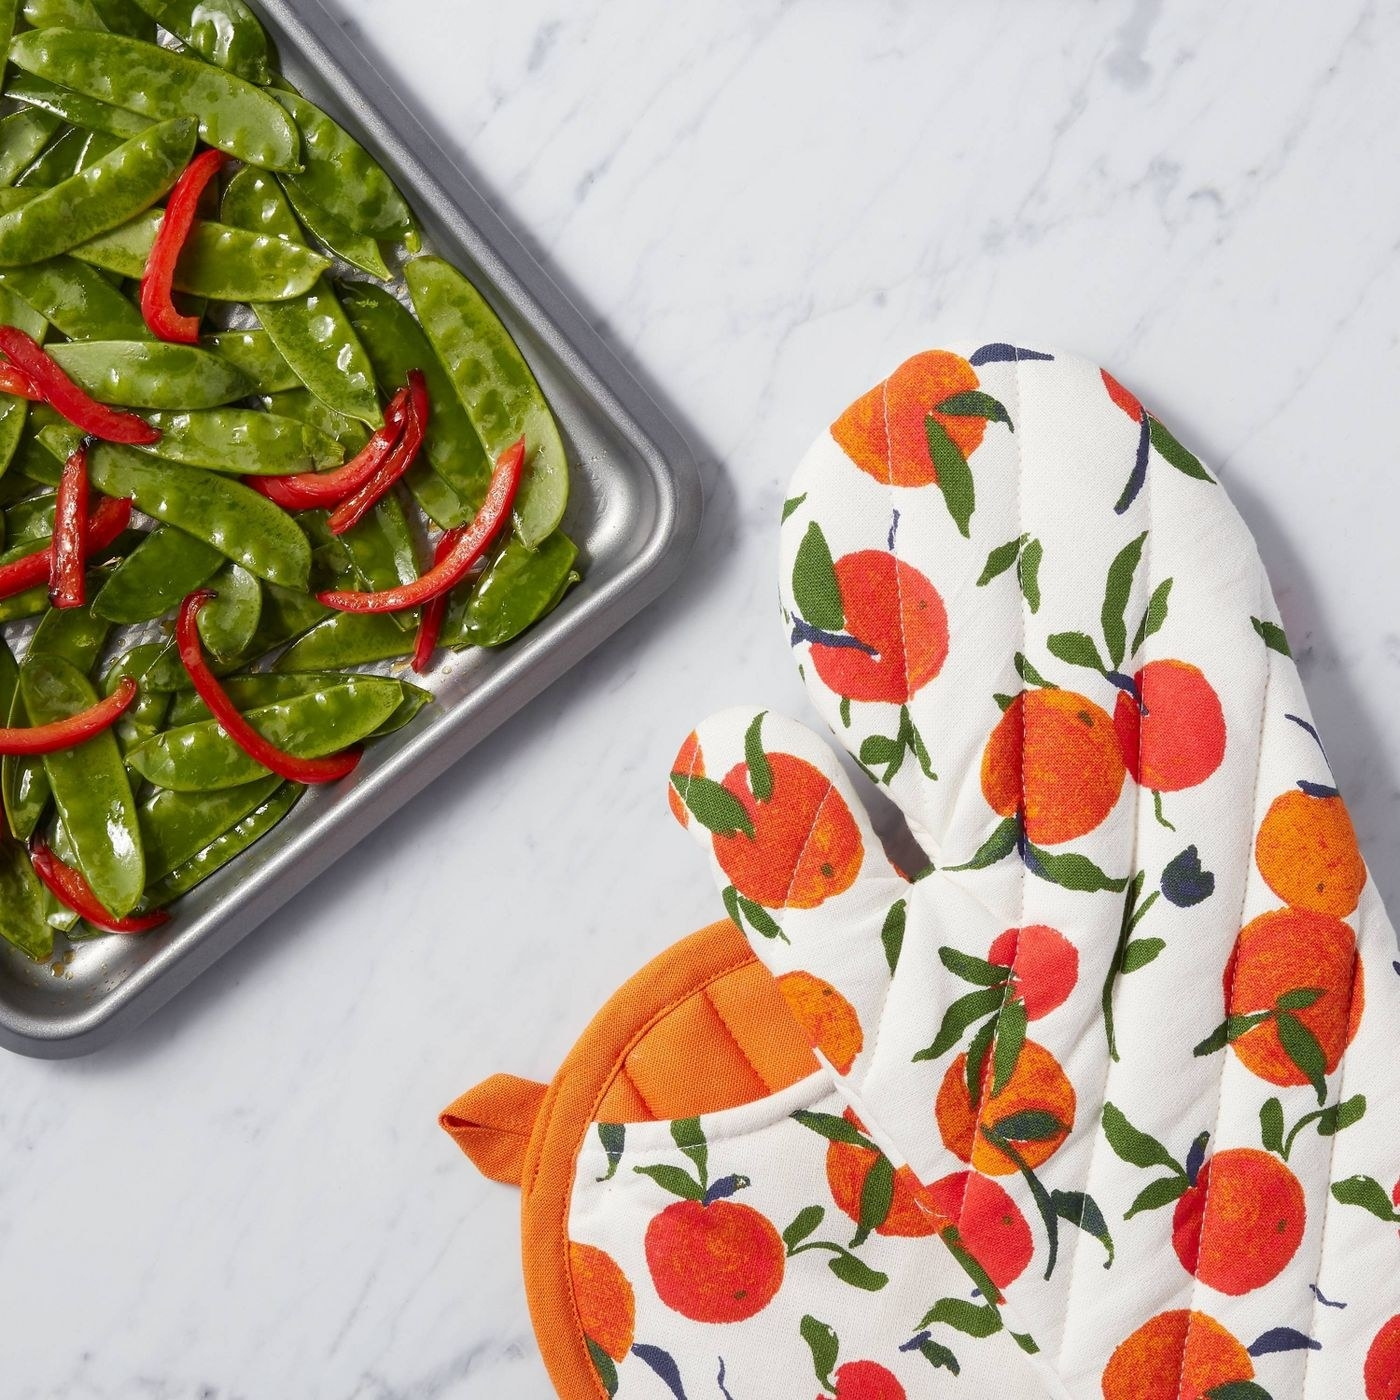 the orange patterned mitt and potholder next to a sheet pan of vegetables